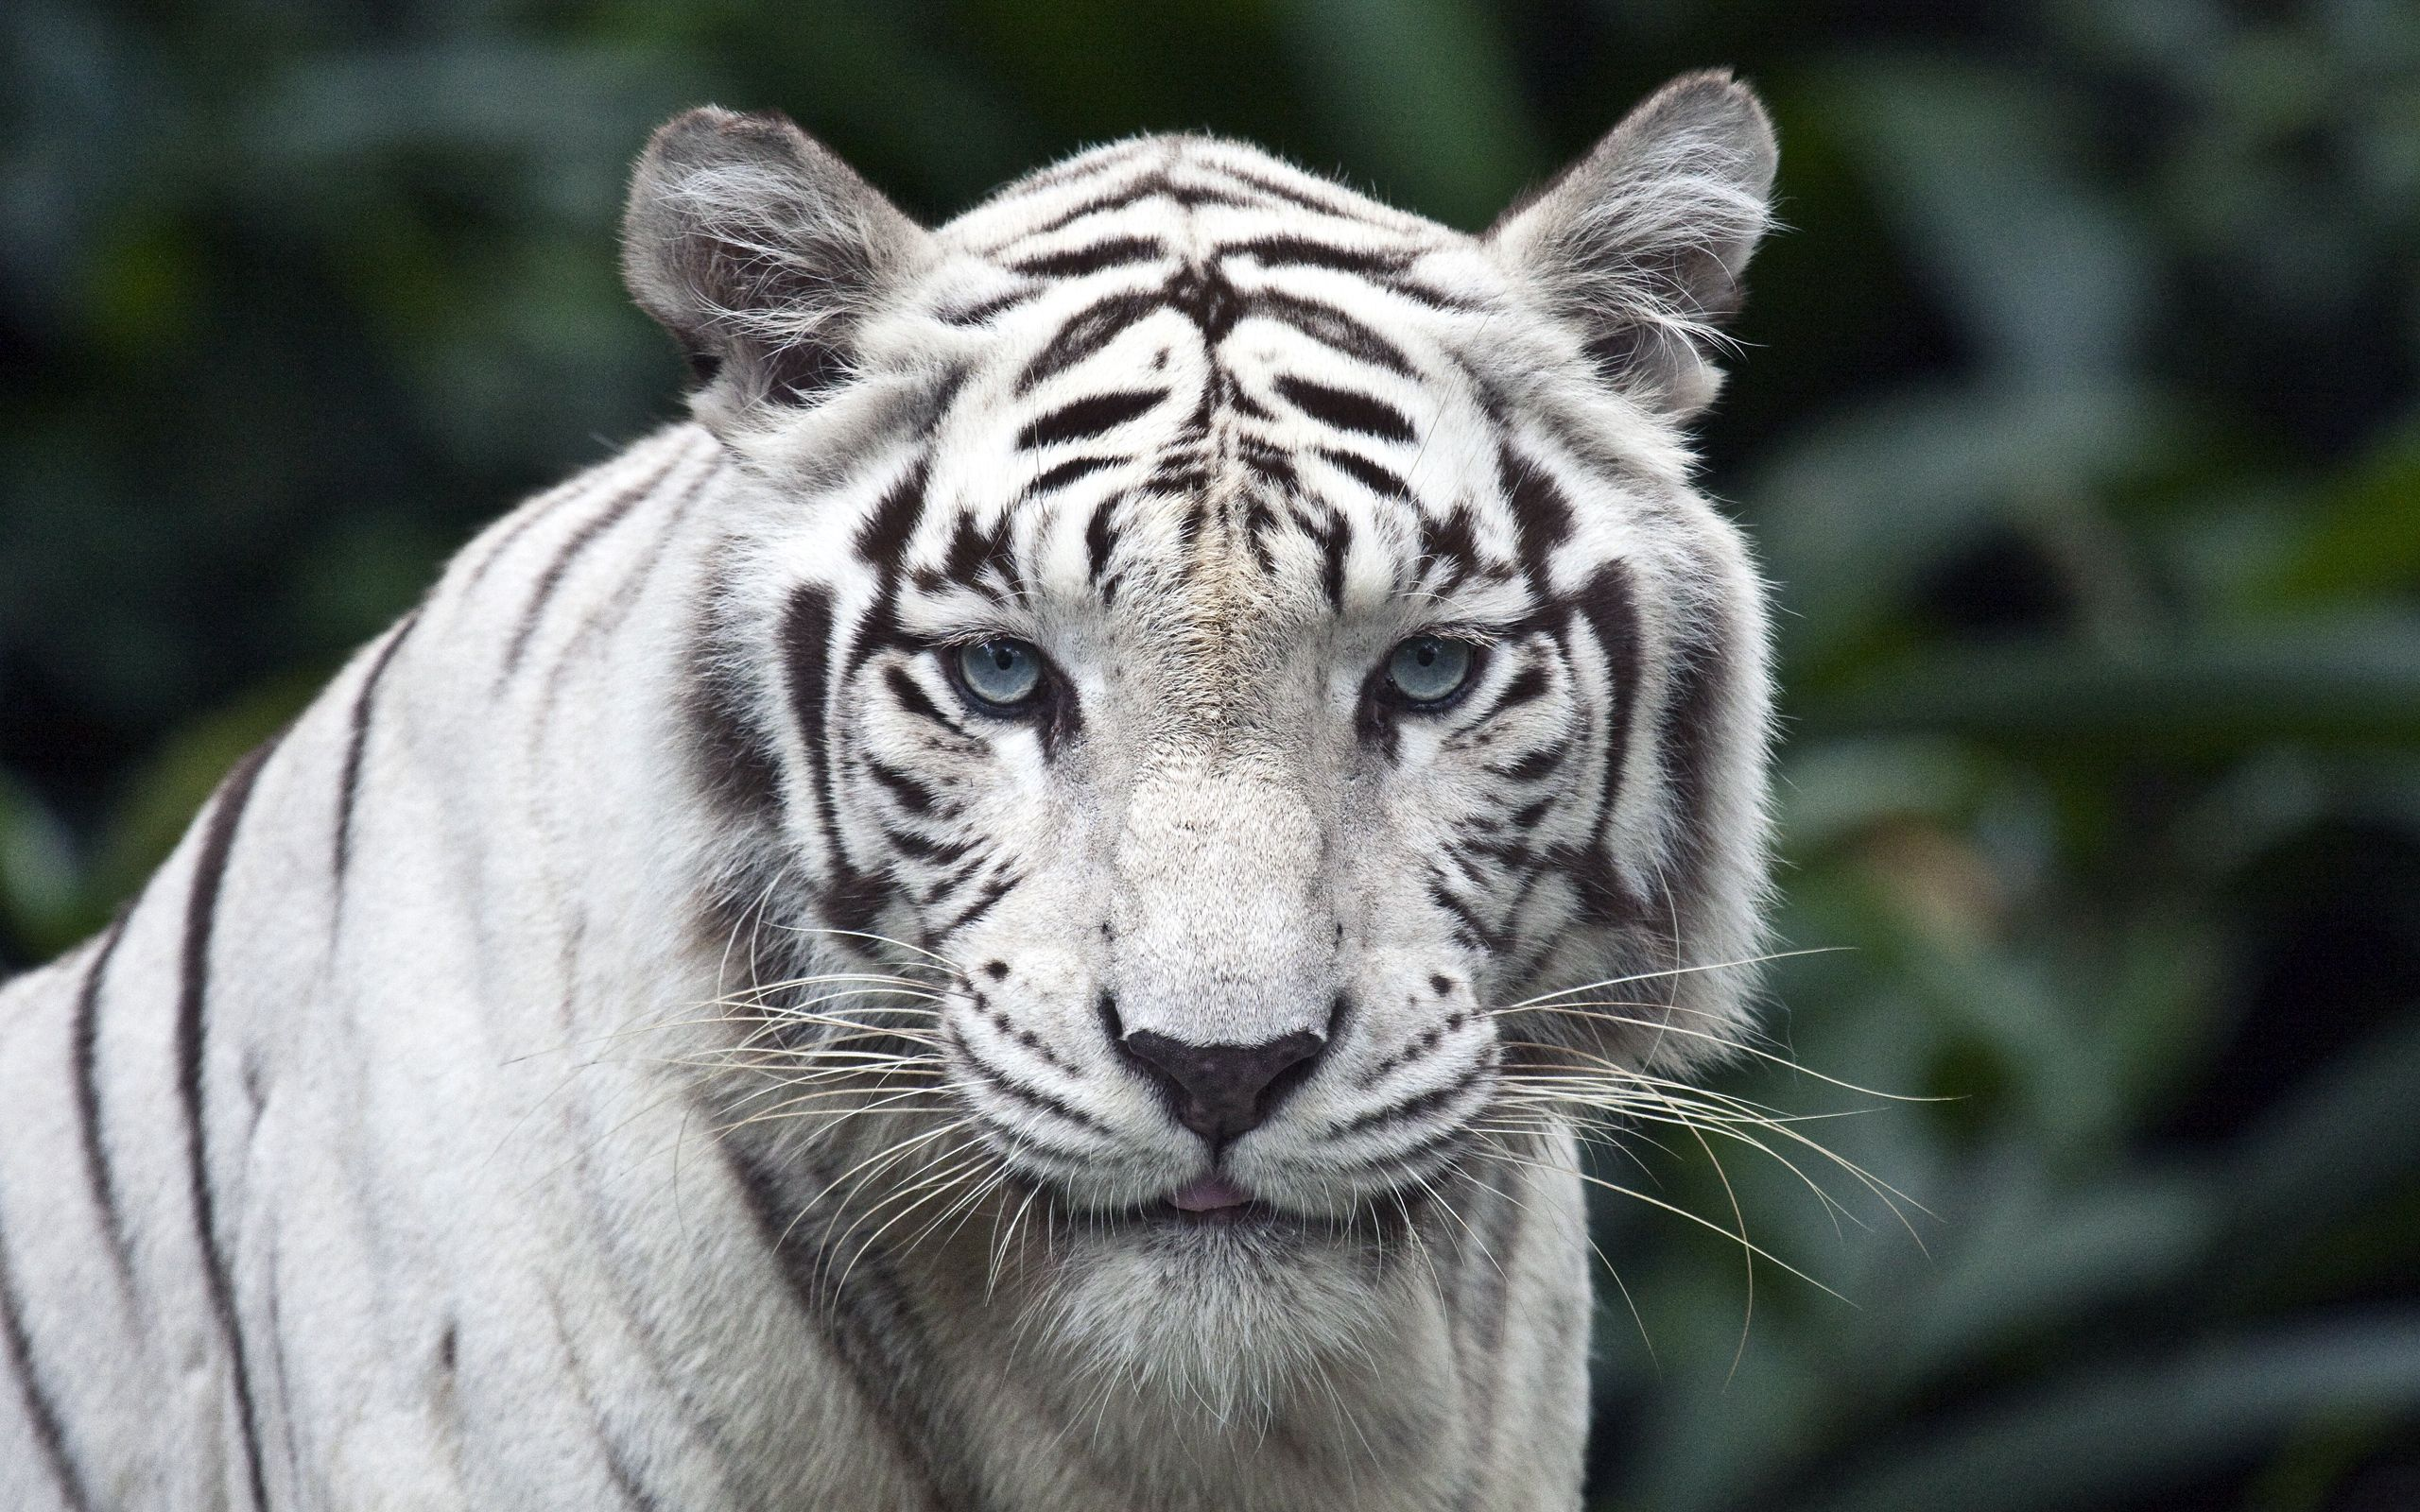 89692 download wallpaper Animals, Tiger, Predator, Big Cat, Albino, Sight, Opinion, Stripes, Streaks screensavers and pictures for free